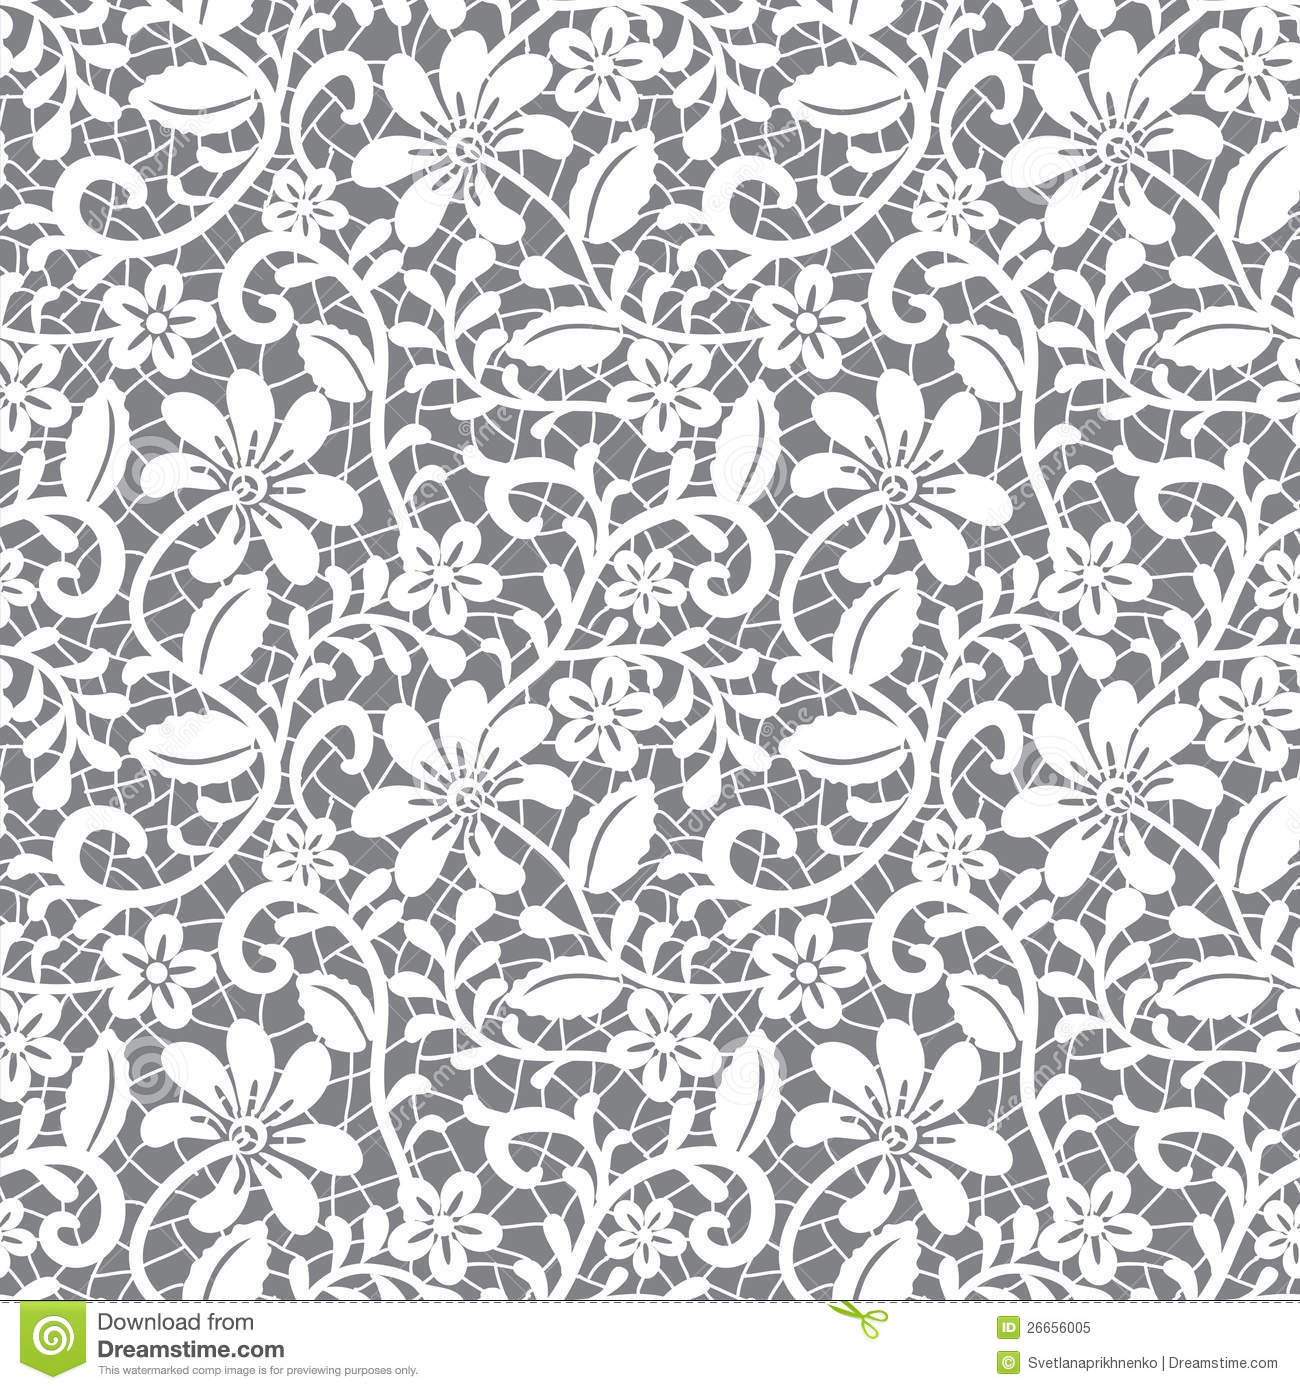 Free clipart background patterns svg black and white download Lace background free clipart - ClipartFest svg black and white download